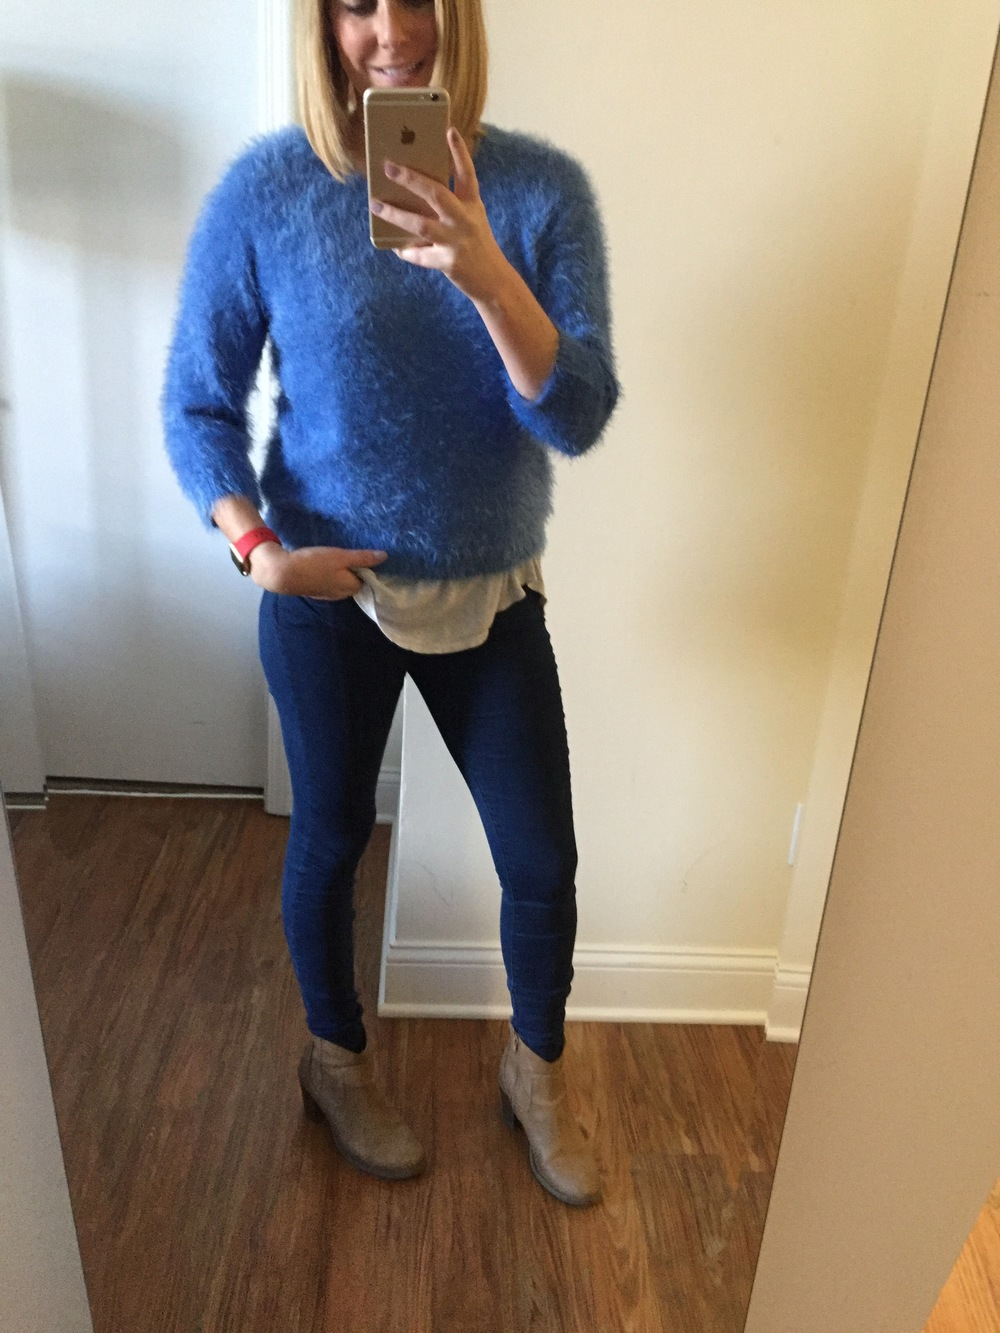 Sweater: Forever 21 (last year), Jeans Gap,  1969 Resolution legging jean,  Boots: Old Navy, Watch:Apple, 38mm Gold Aluminum Case  (with (PRODUCT) RED Sport Band)